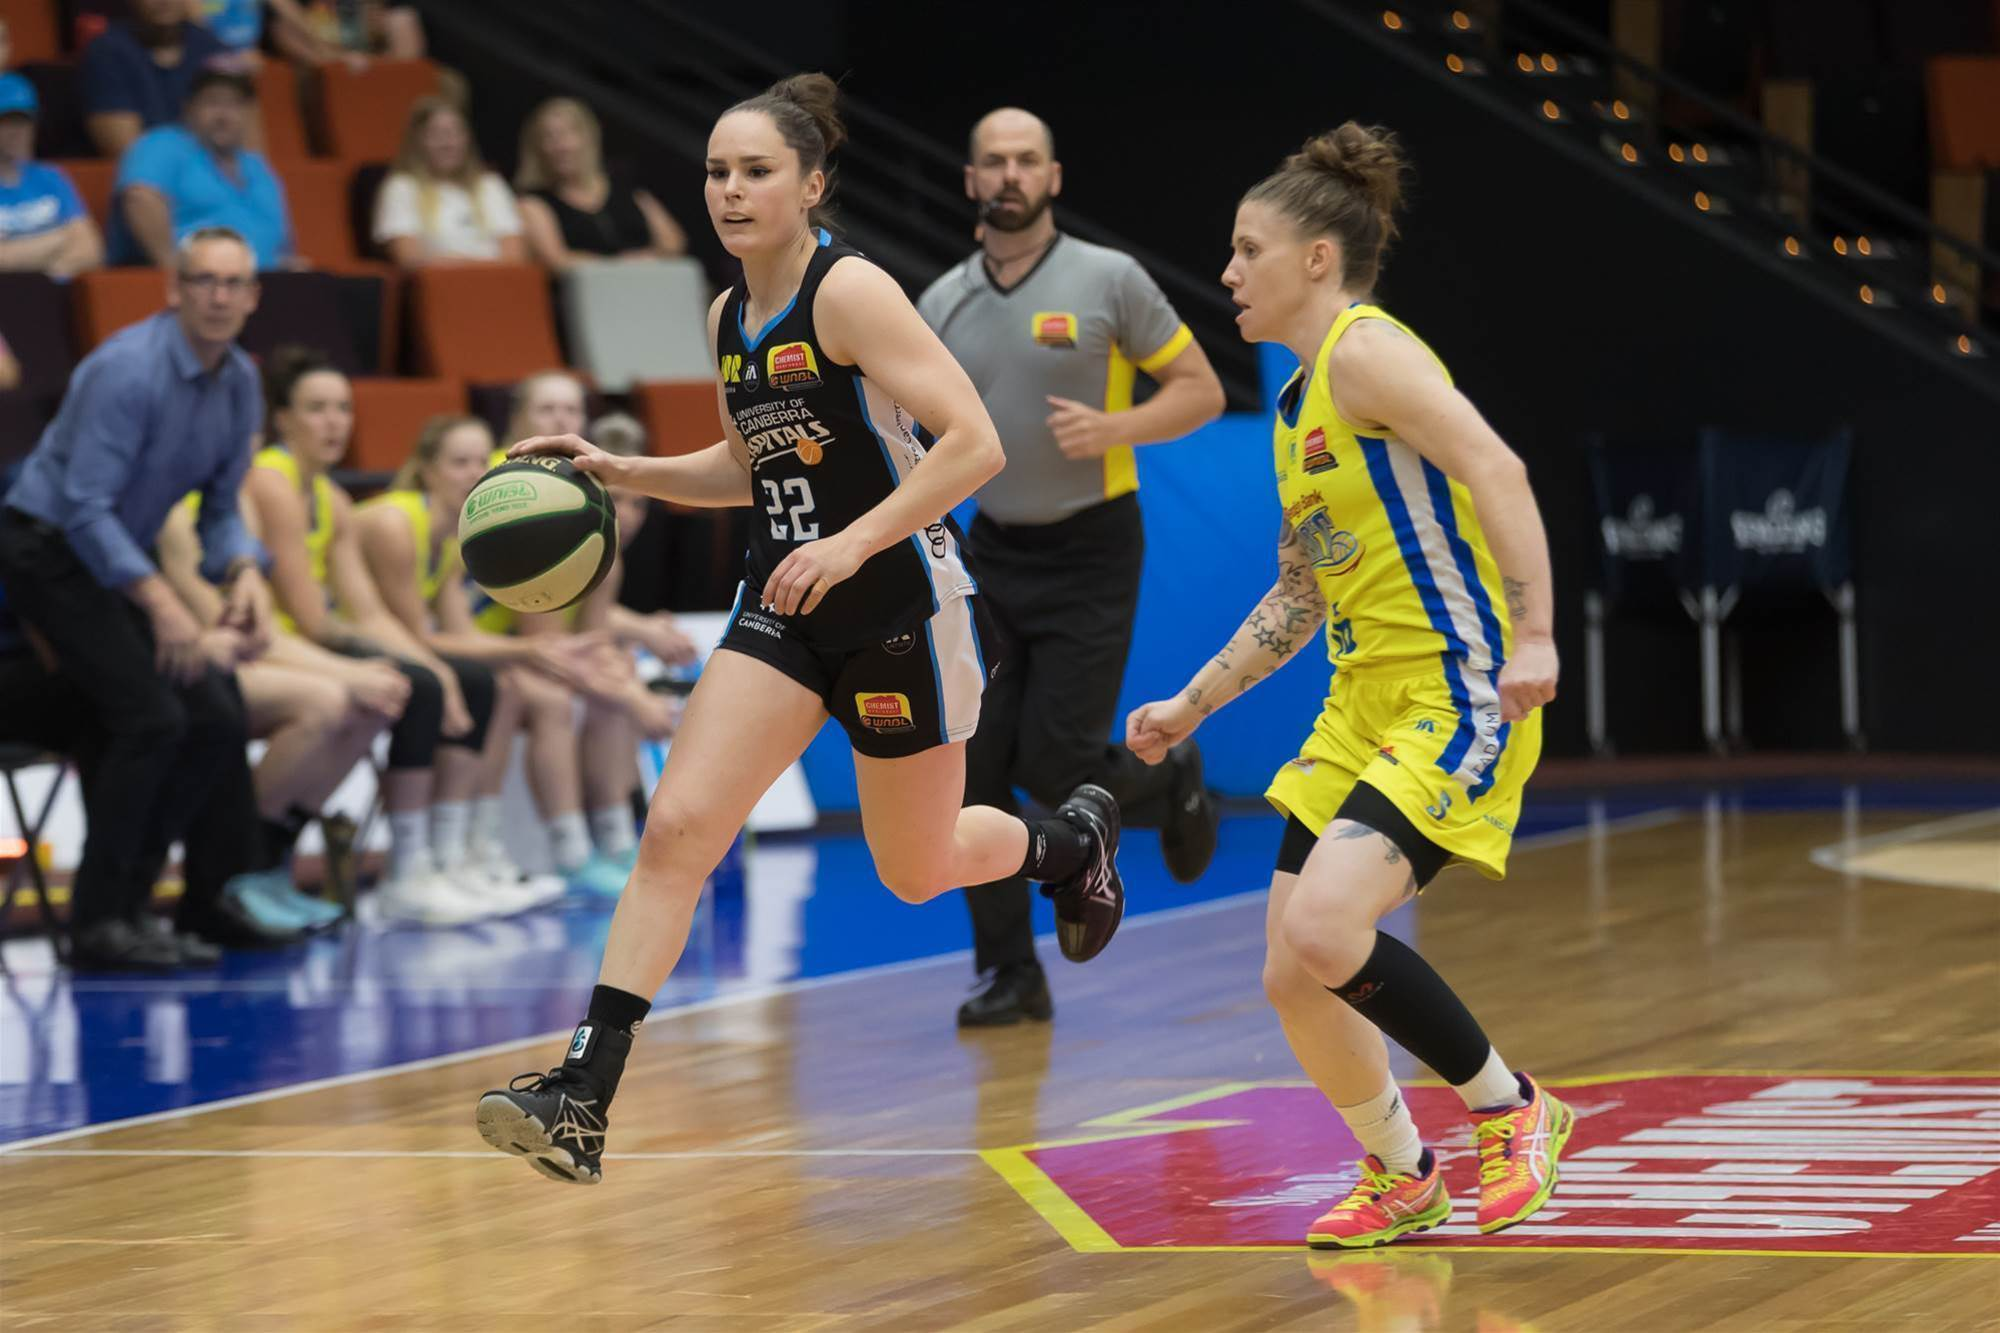 WNBL pics: Capitals vs Spirit